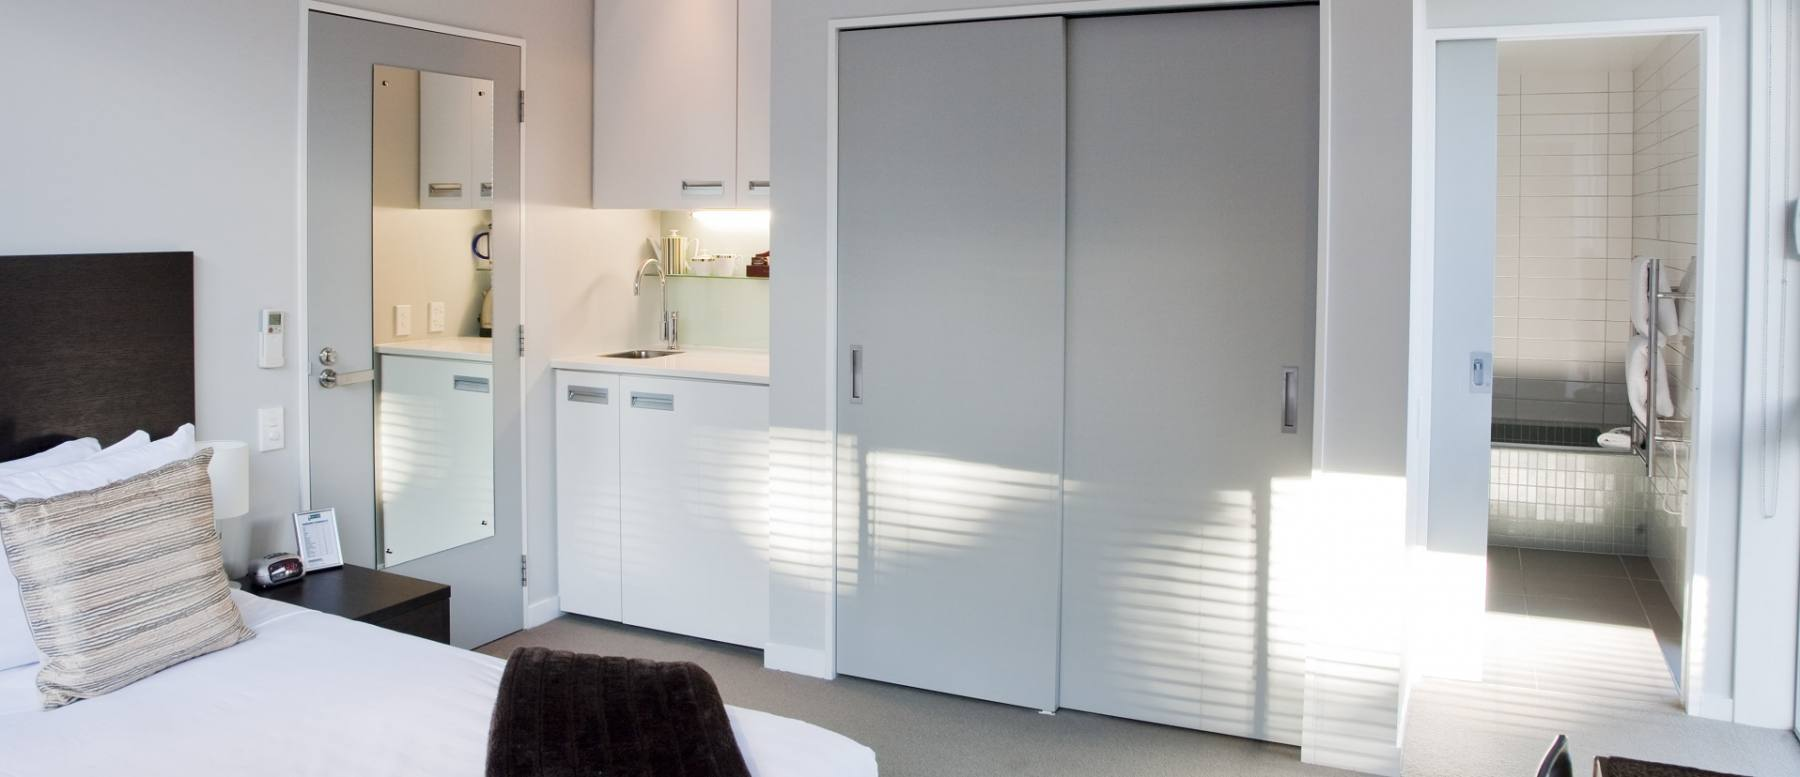 About pounamu apartments with online reservations - Bank kitchenette ...